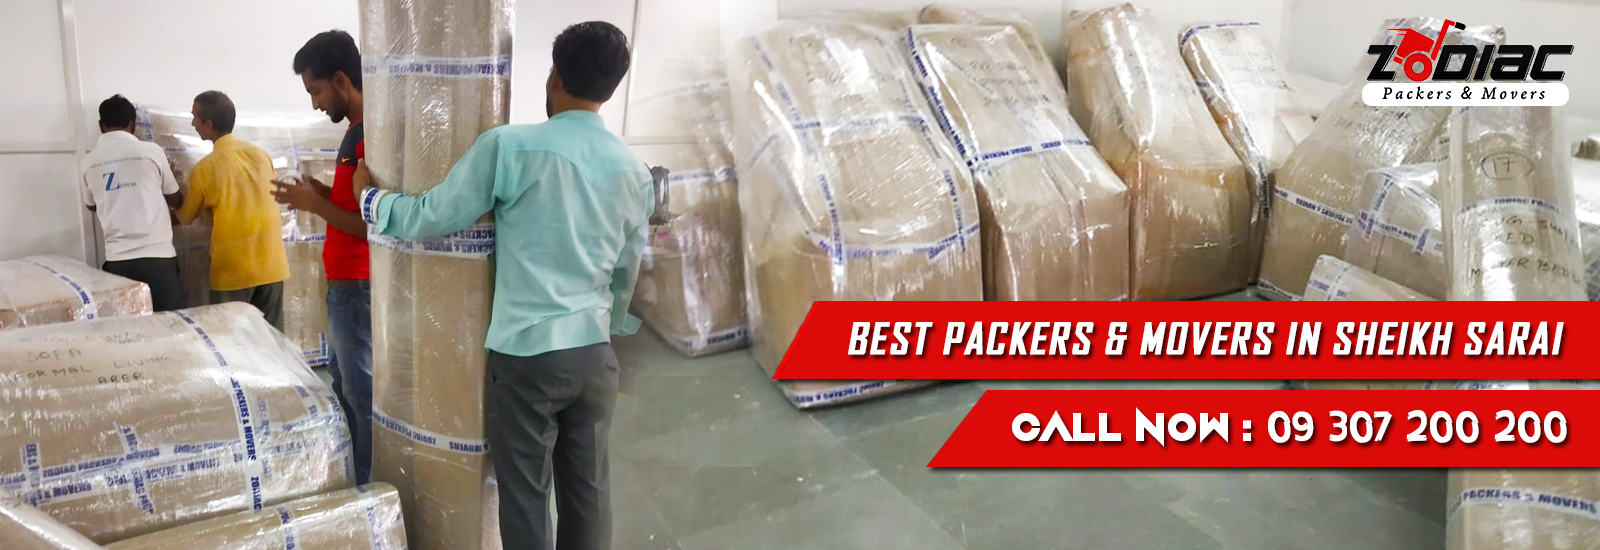 Packers and Movers in Sheikh Sarai